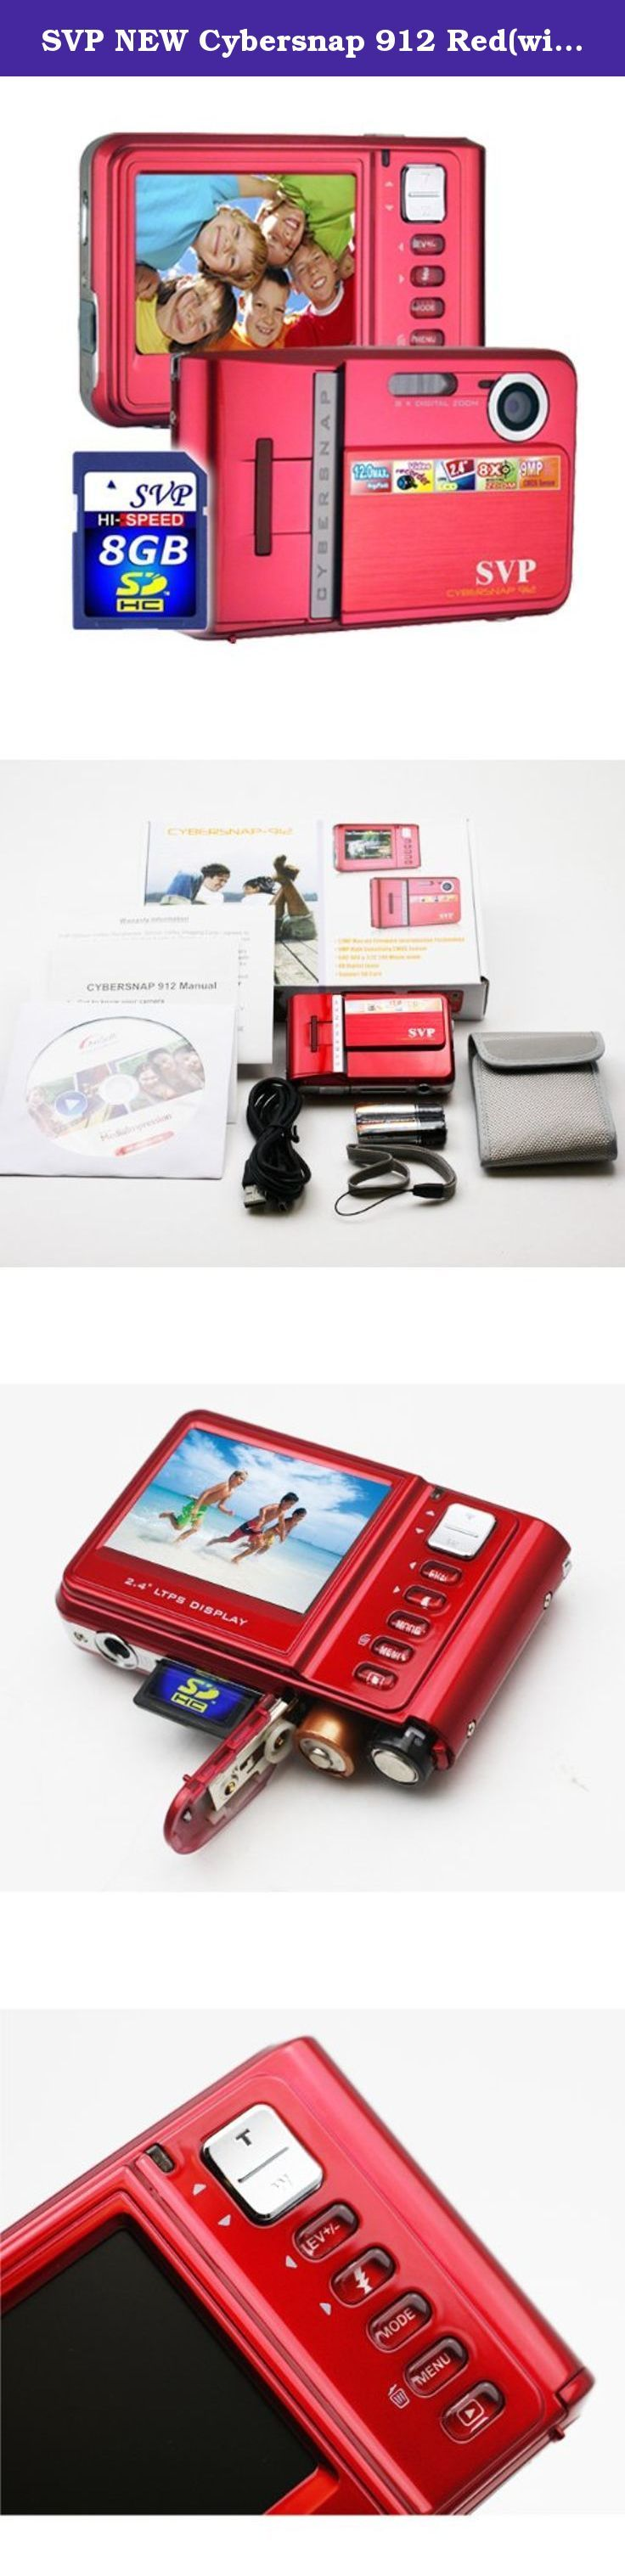 SVP NEW Cybersnap 912 Red(with 8GB included) 9MP Red Digital Camera+ Video Recorder+8X Zoom~ UltraSlim (8GB Included). Full High Definition Video up to 1080P (1440x1080) at 30 frame per second with H.264 Video Decoder. Resolution sensor gives you the option of taking 5MP, 3MP, 1MP resolution images, and 7.7MP resolution images. Incorporates a high-performance 5x optical zoom lens with a maximum aperture of F3.7. Also Augmented by the 4x digital zoom, the HDT500A-Bk offers zooming…